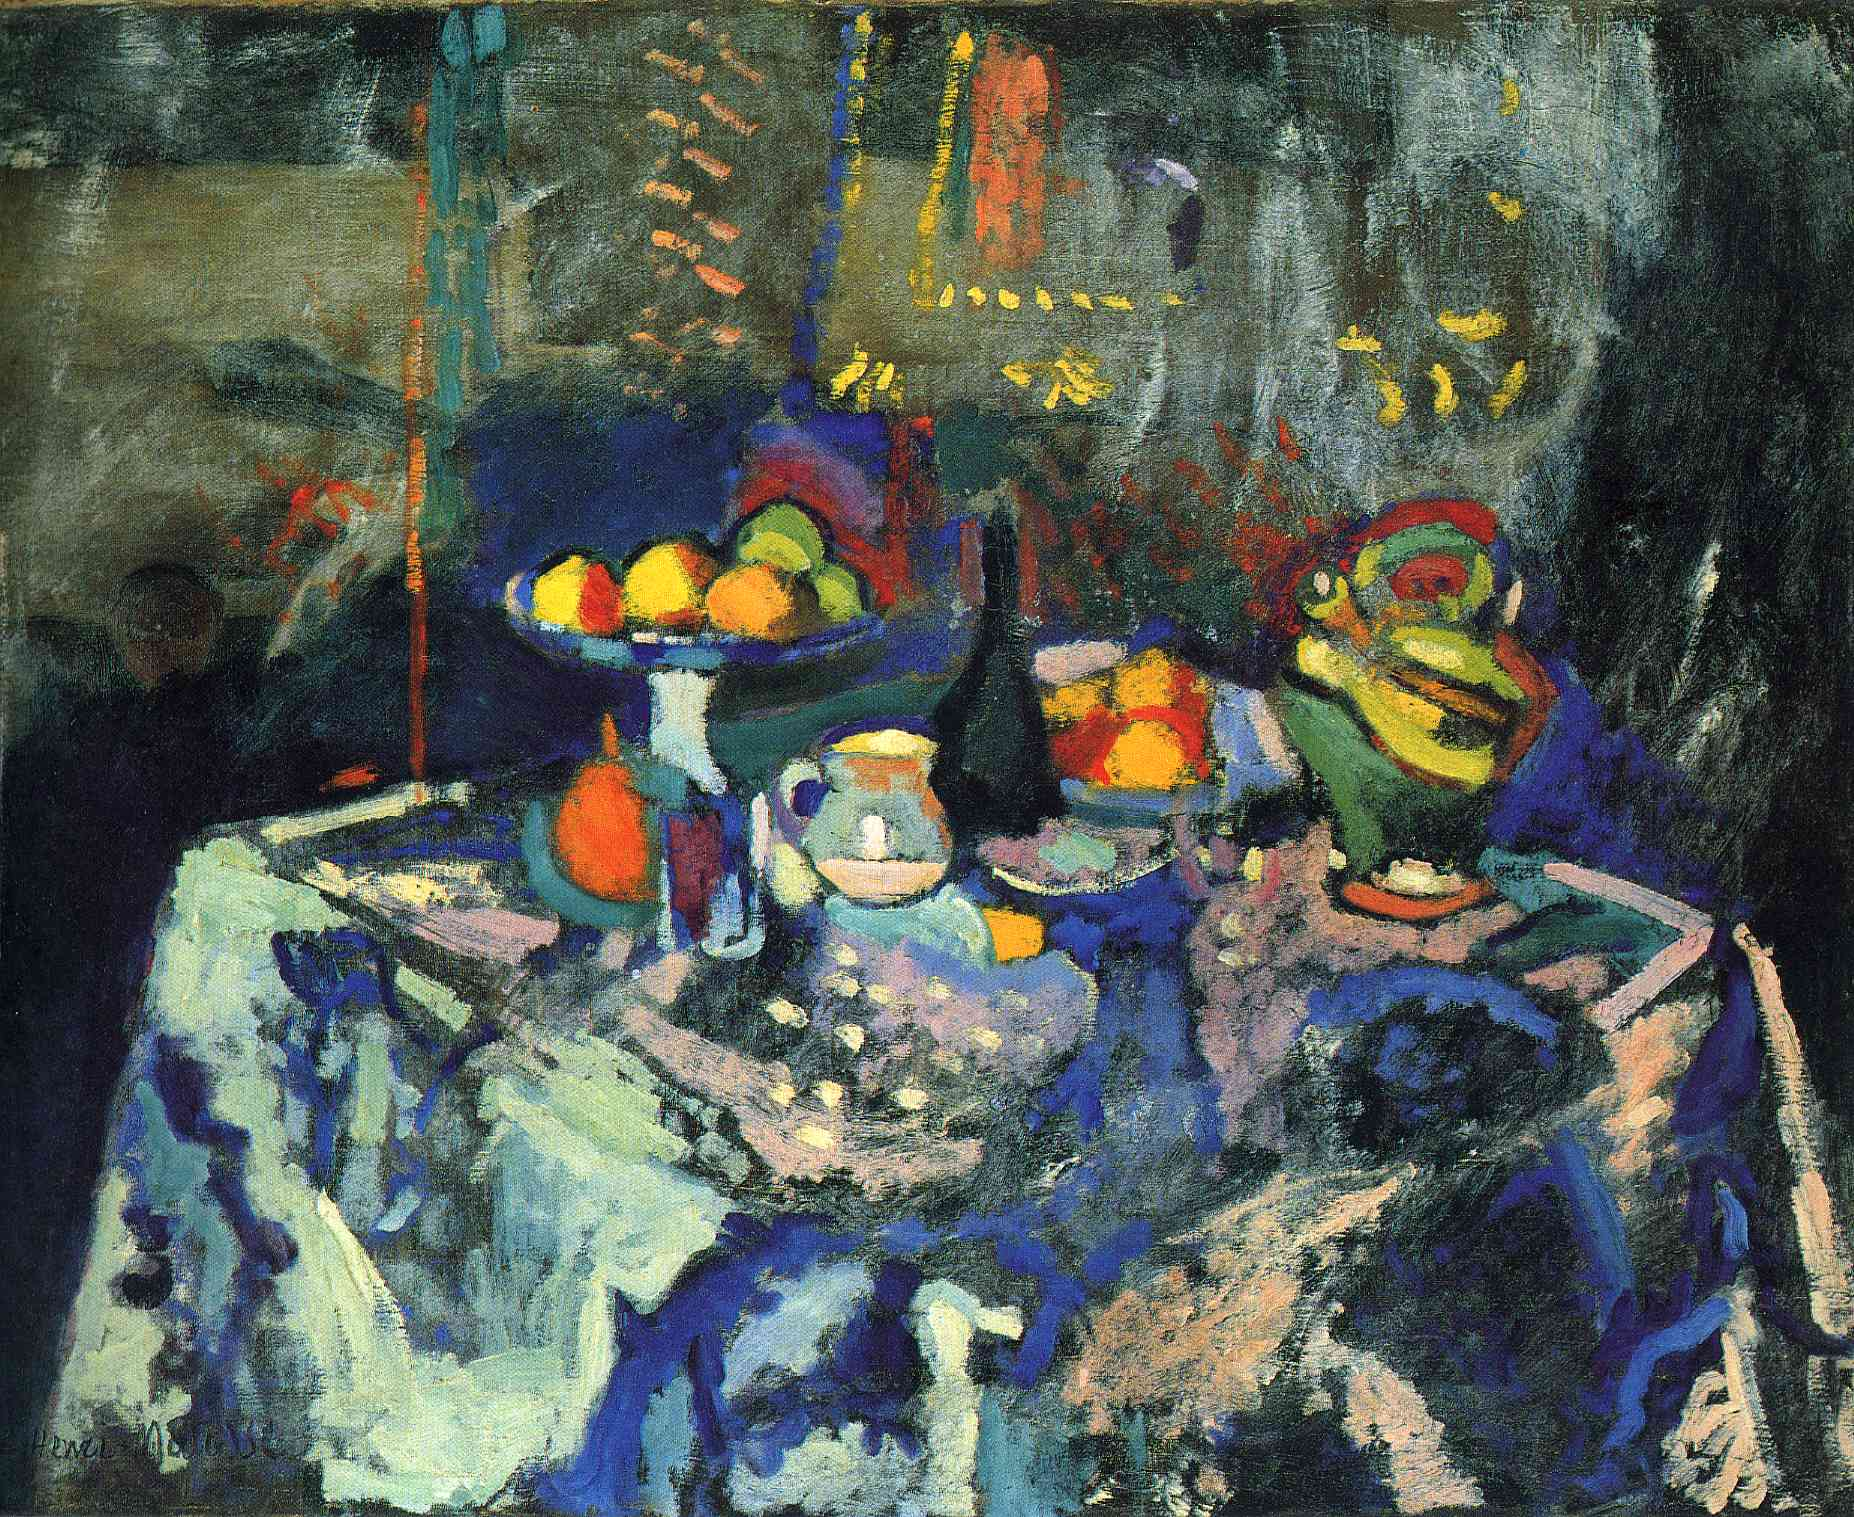 Henri Matisse - Still Life with Vase, Bottle and Fruit 1906